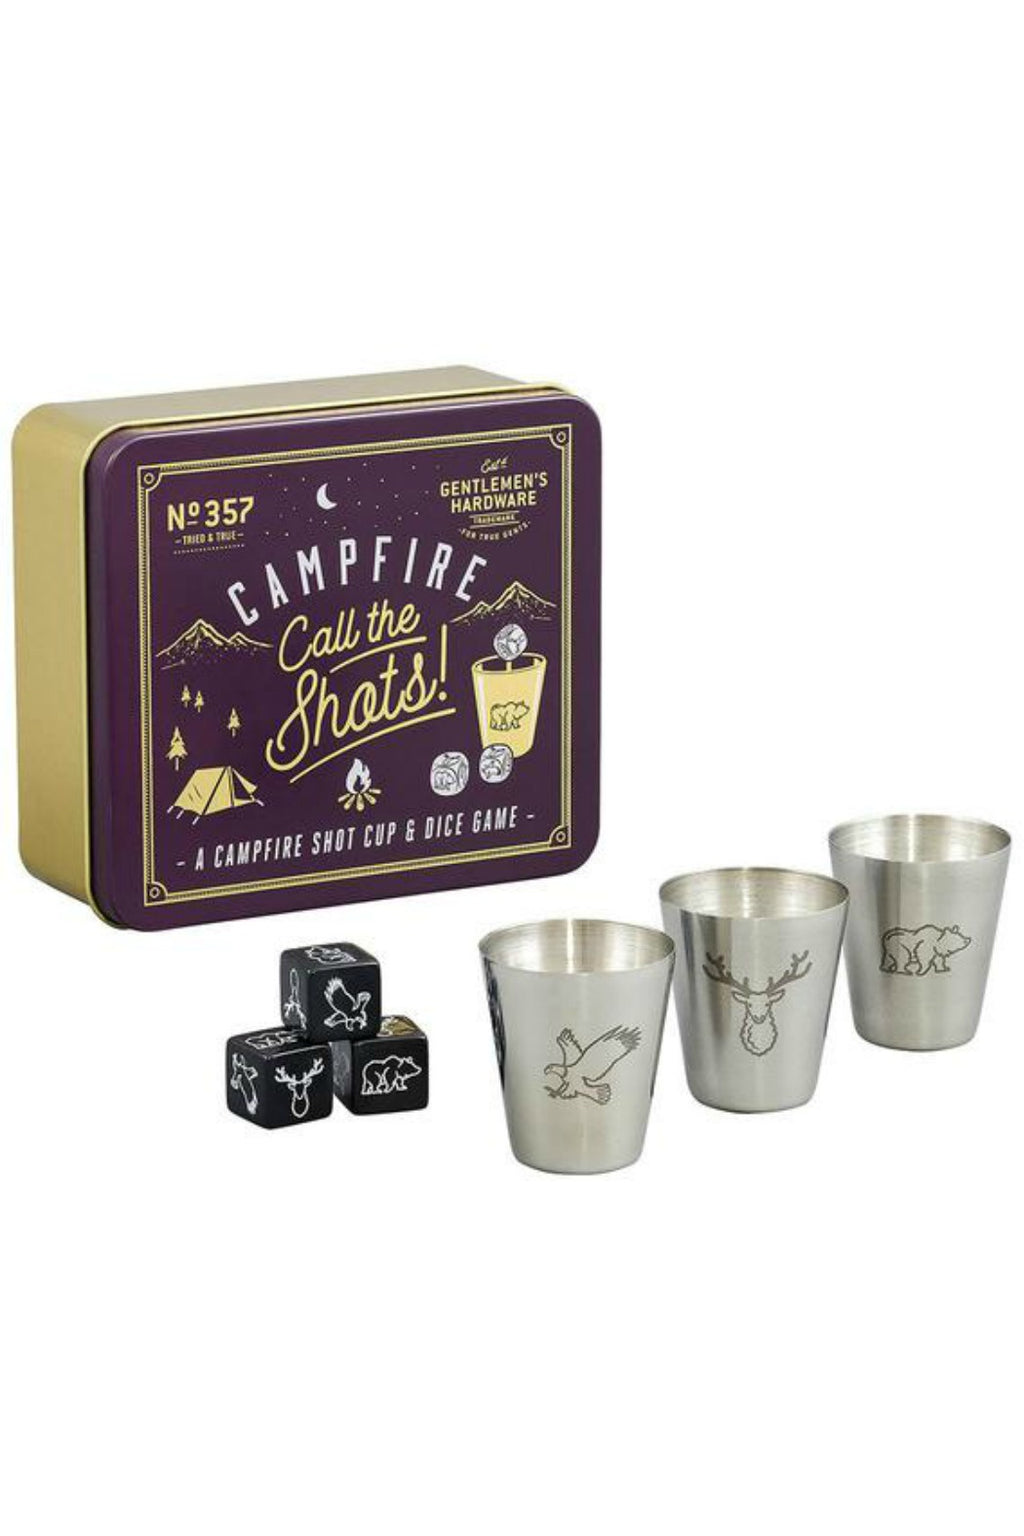 Gentleman's Hardware Campfire Call the Shots Dice Drinking GameCampfire 'Call The Shots!' Shot Cup and Dice Game